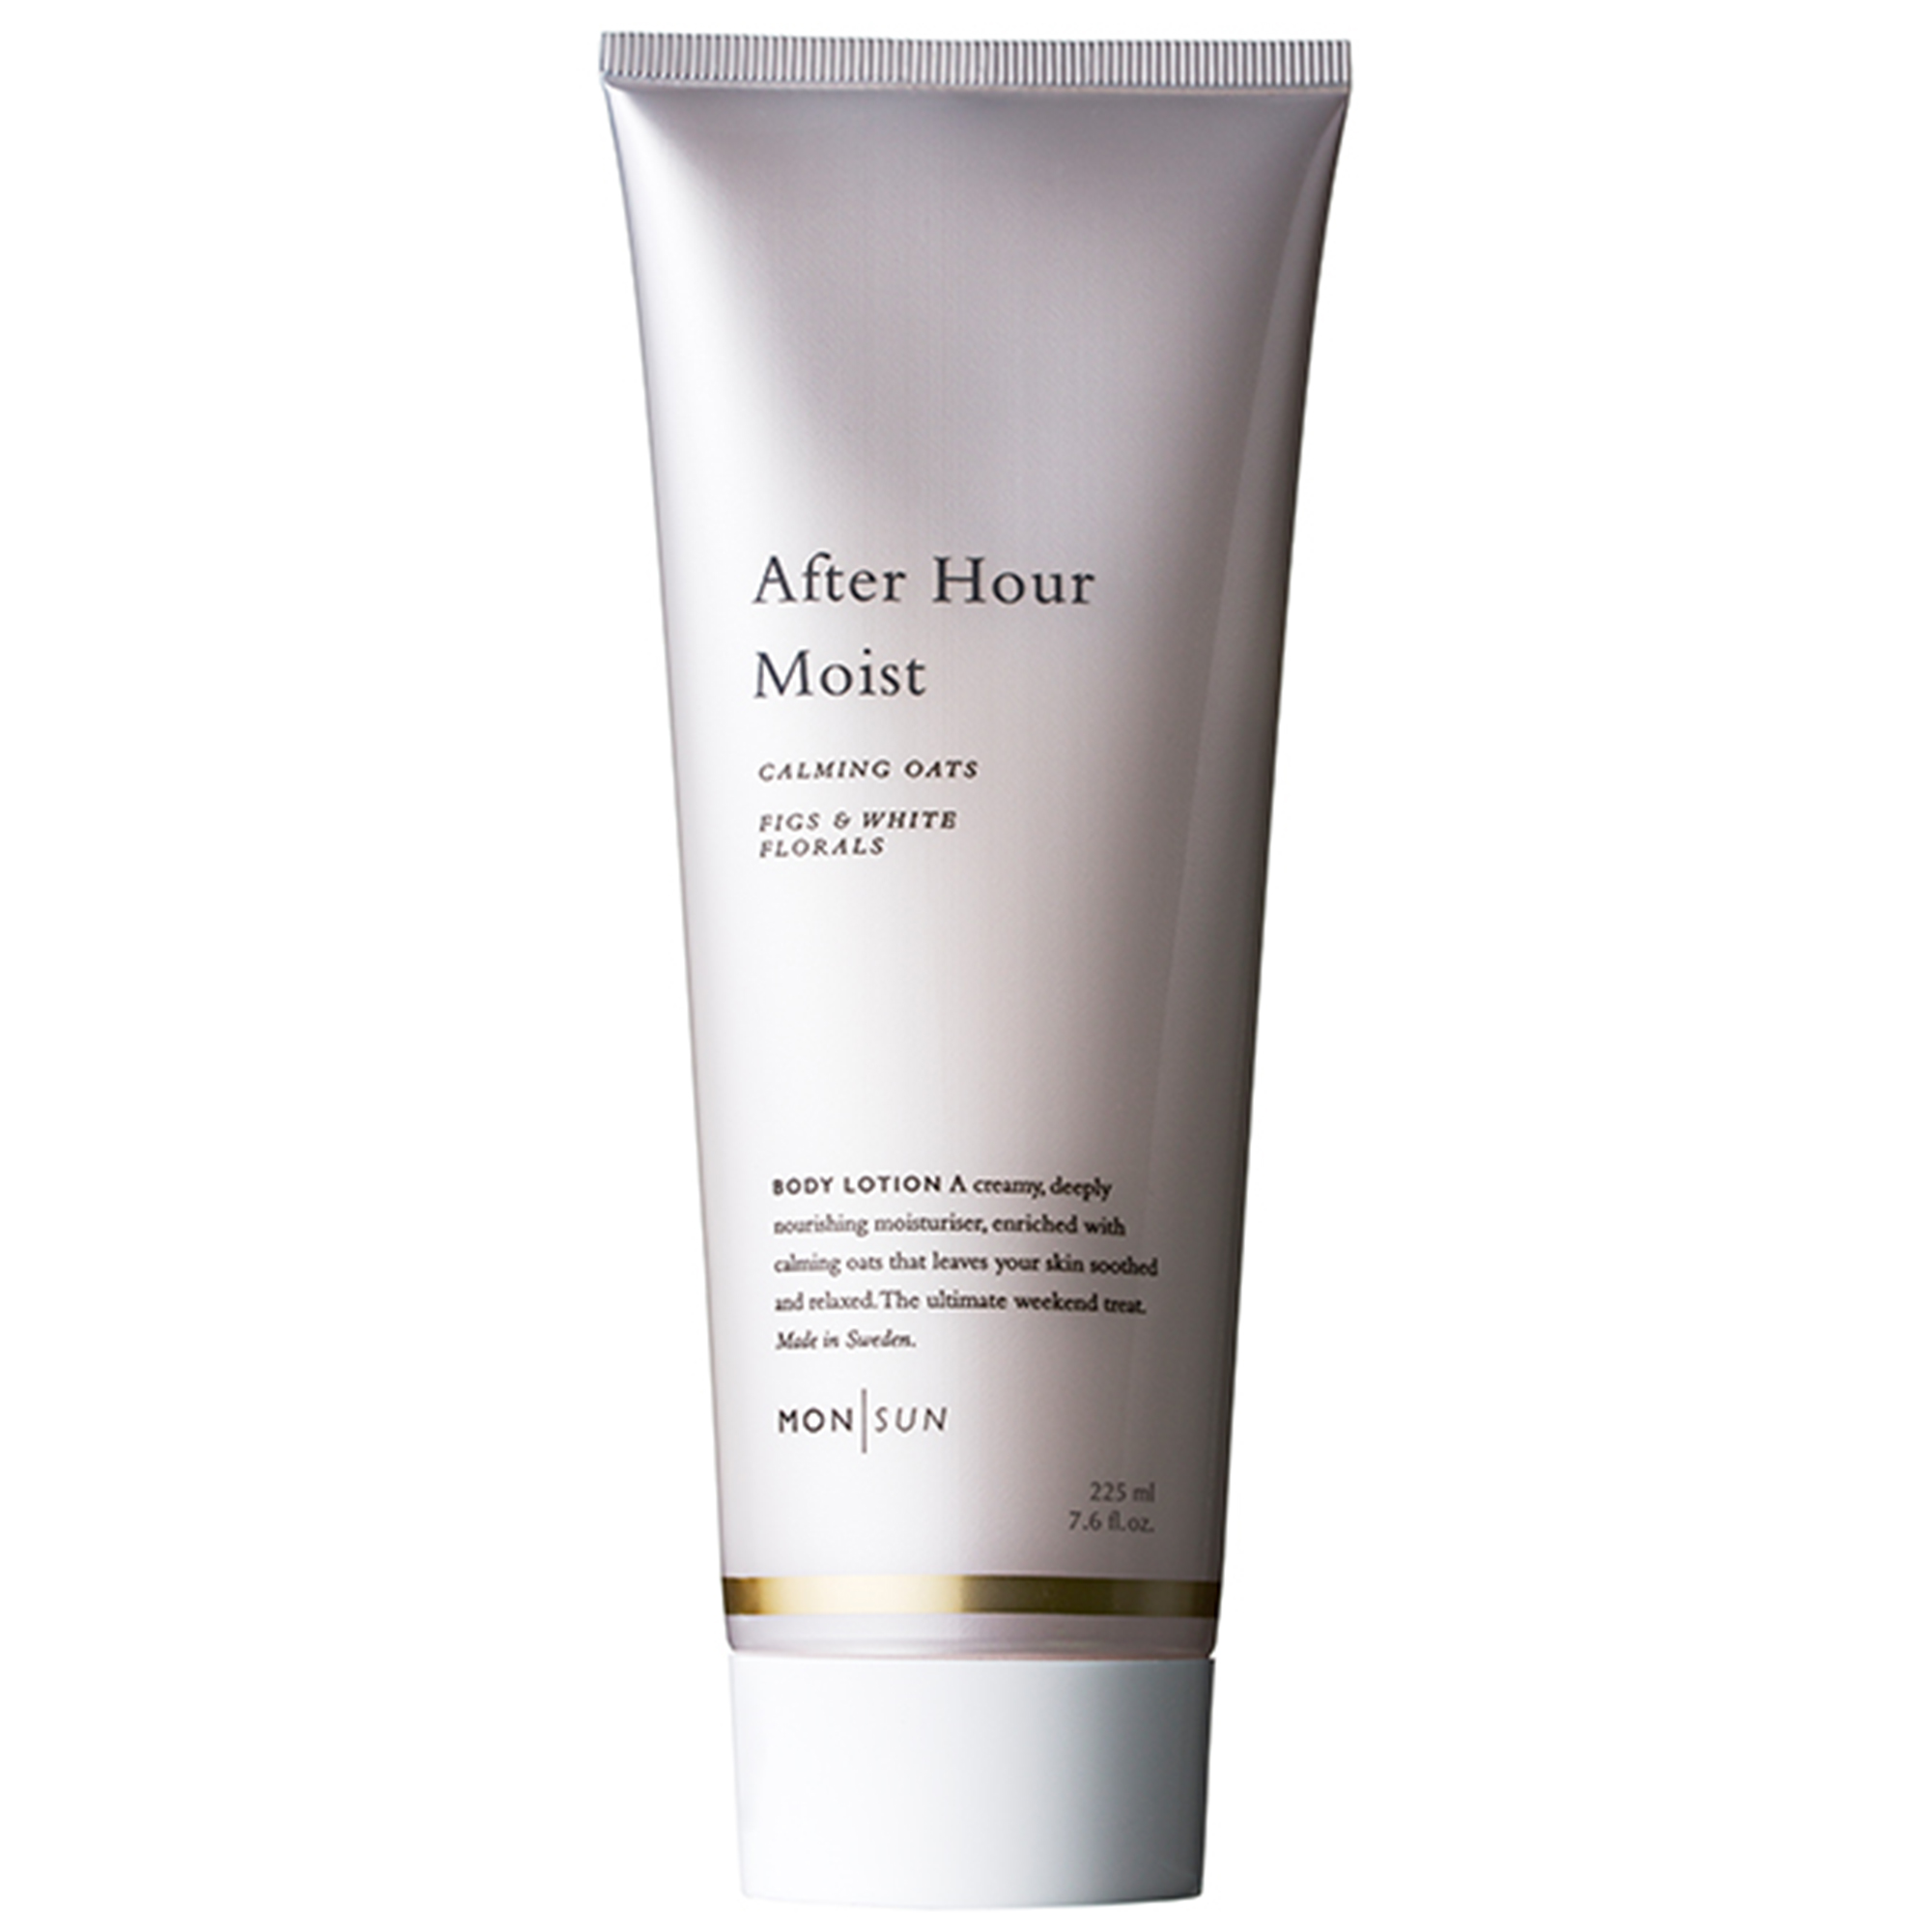 After Hour Moist Calming Oats Body Lotion